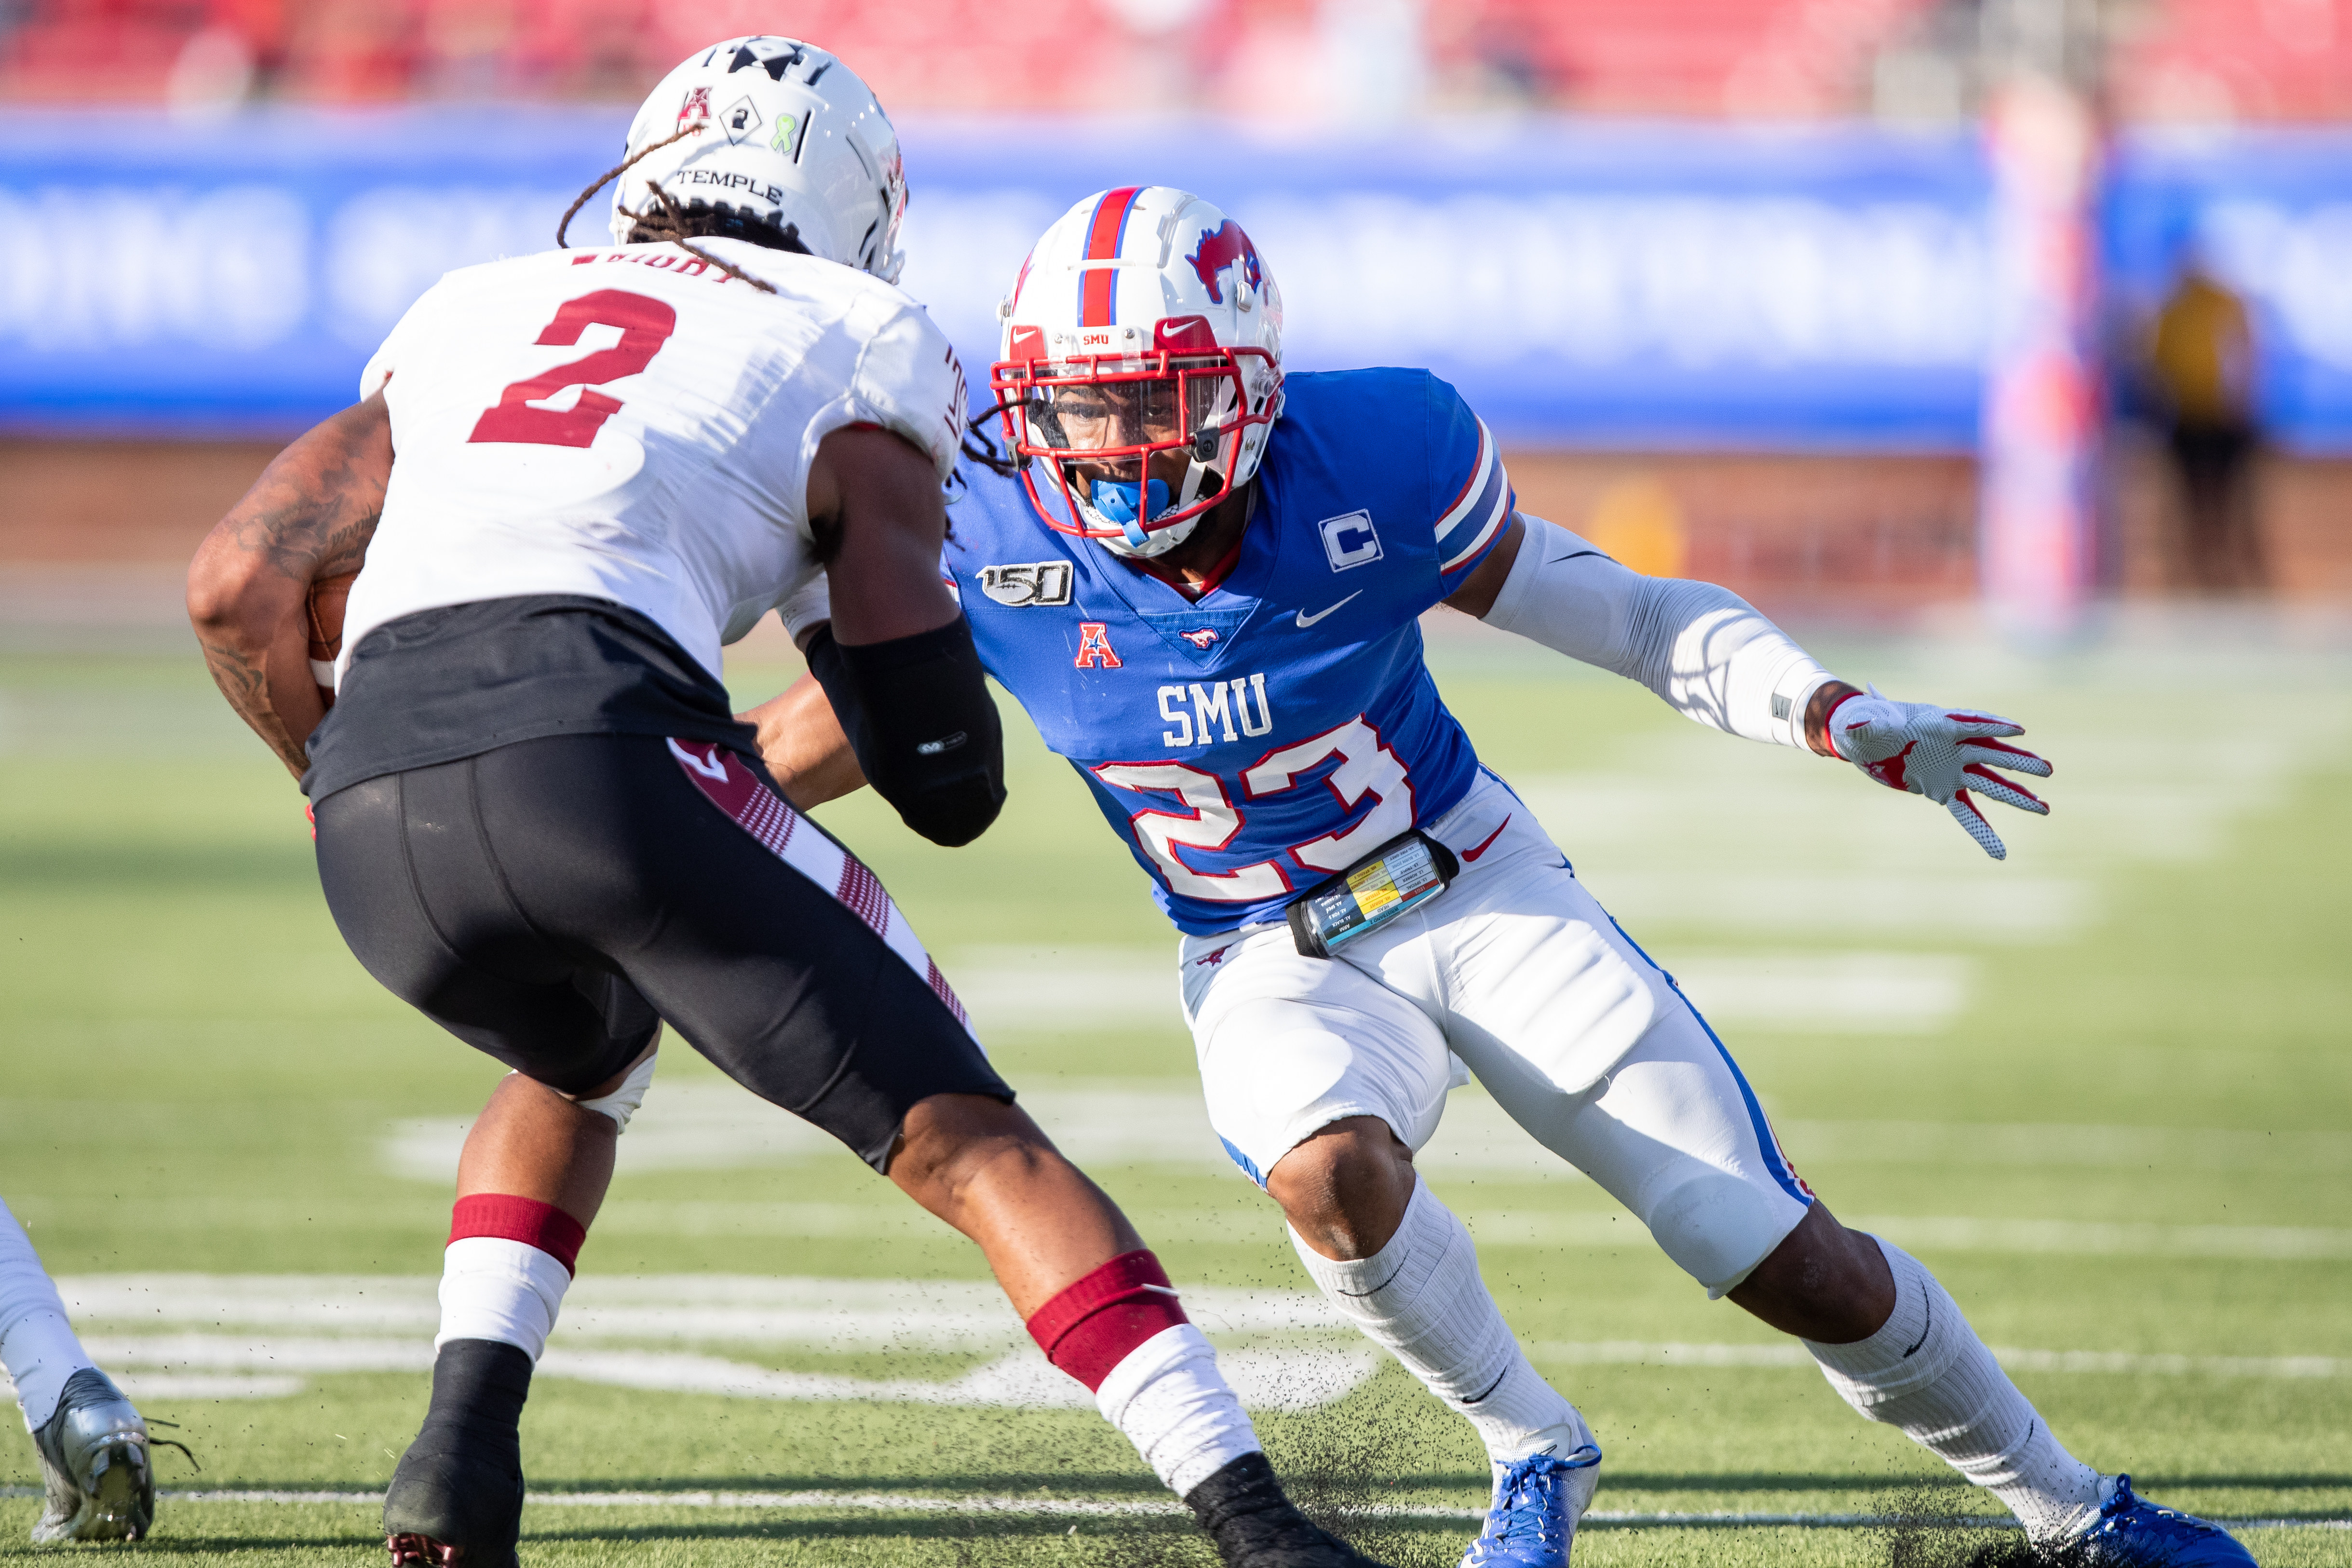 COLLEGE FOOTBALL: OCT 19 Temple at SMU